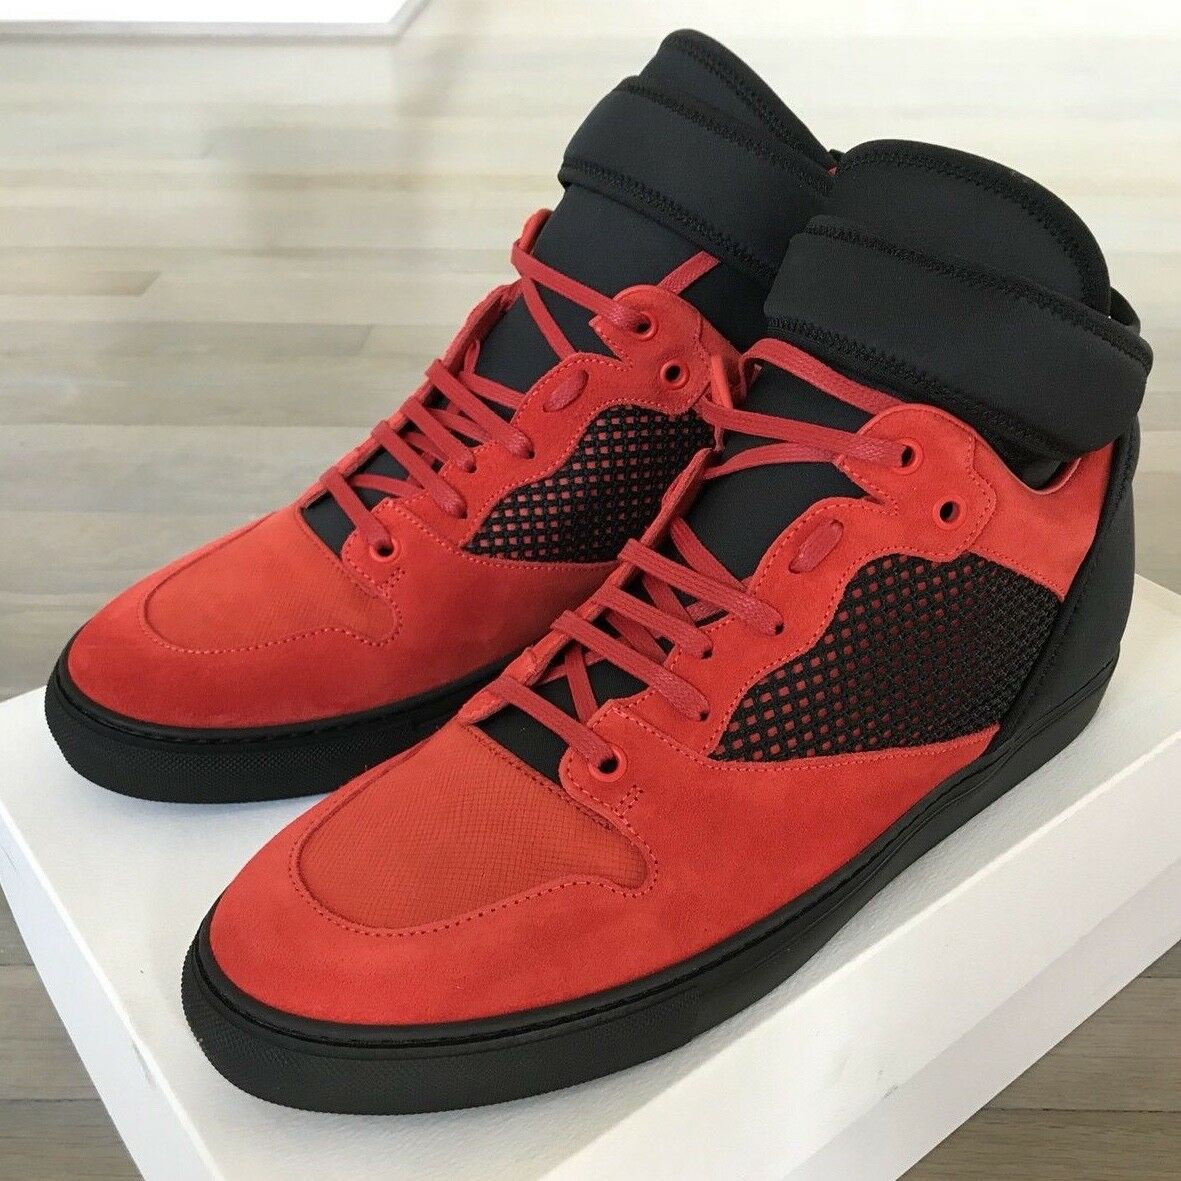 800  Balenciaga Balenciaga Balenciaga Red Suede High Tops  size US 12, EU 45 Made in Italy 9b94d1